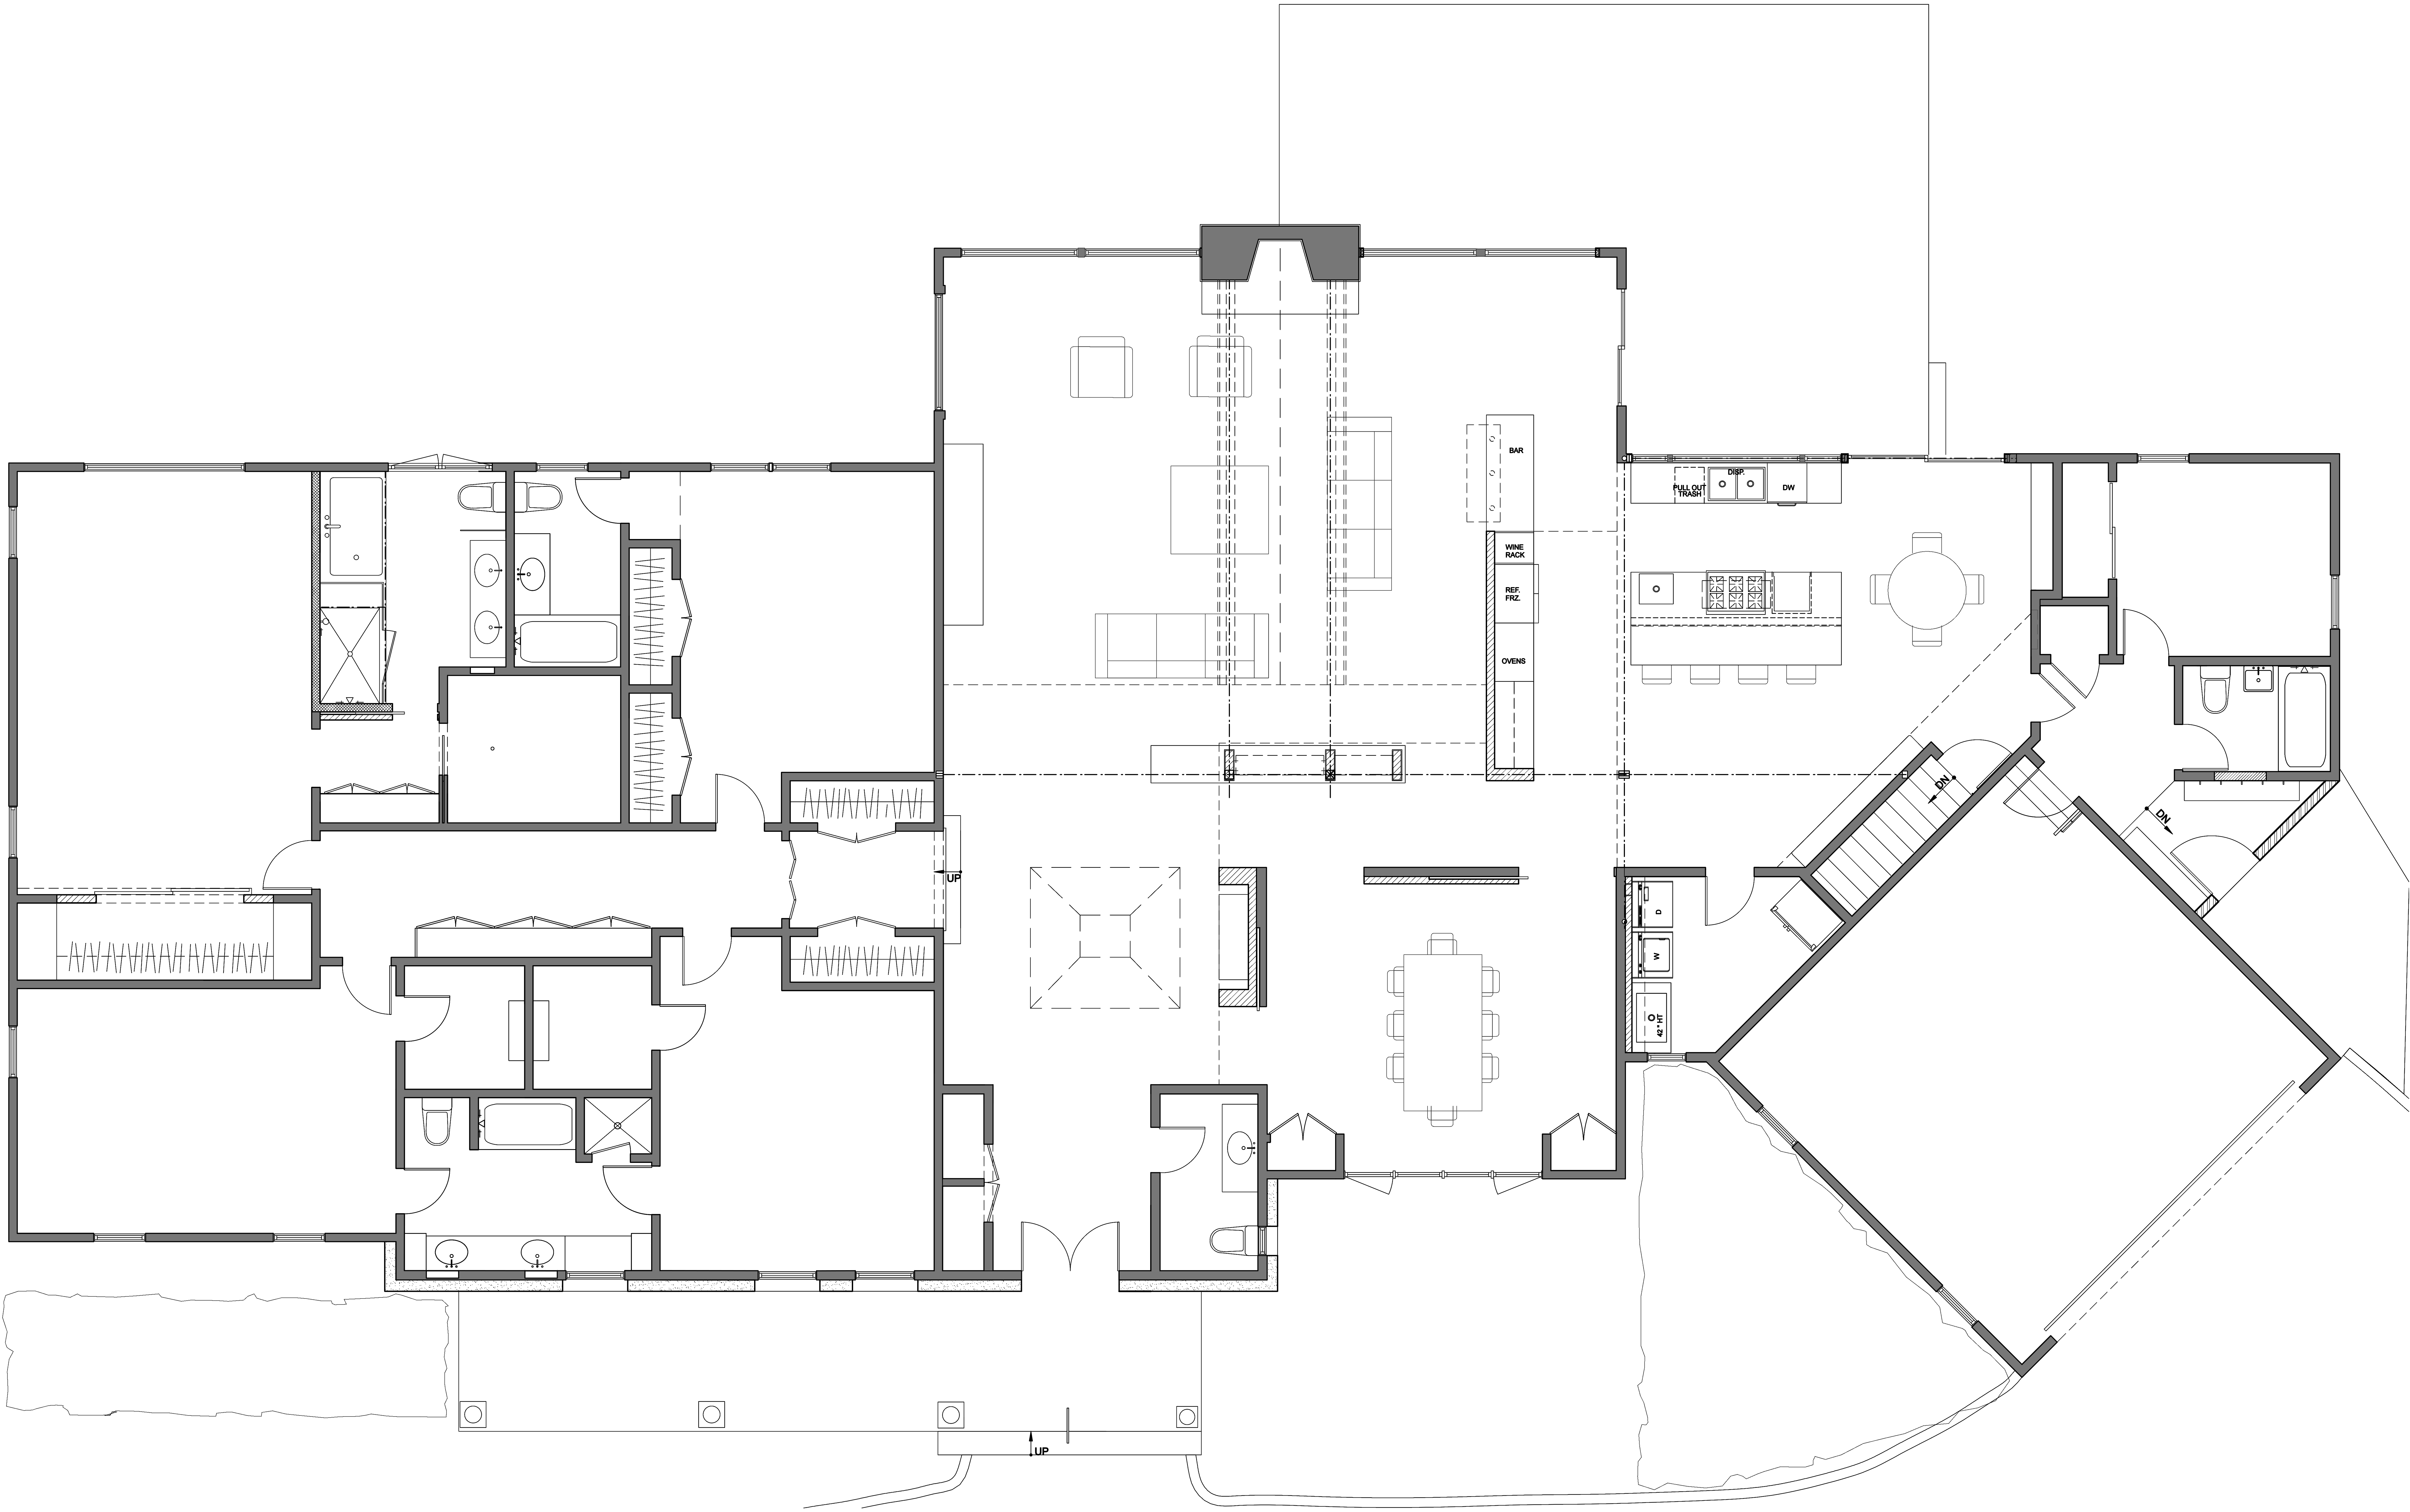 Ground level proposed plan The kitchen will be expanded into the oversized living room, and reconfiguration of openings between foyer, dining room,  kitchen and living room will create an open plan that will be suitable for the frequent entertaining planned by this family